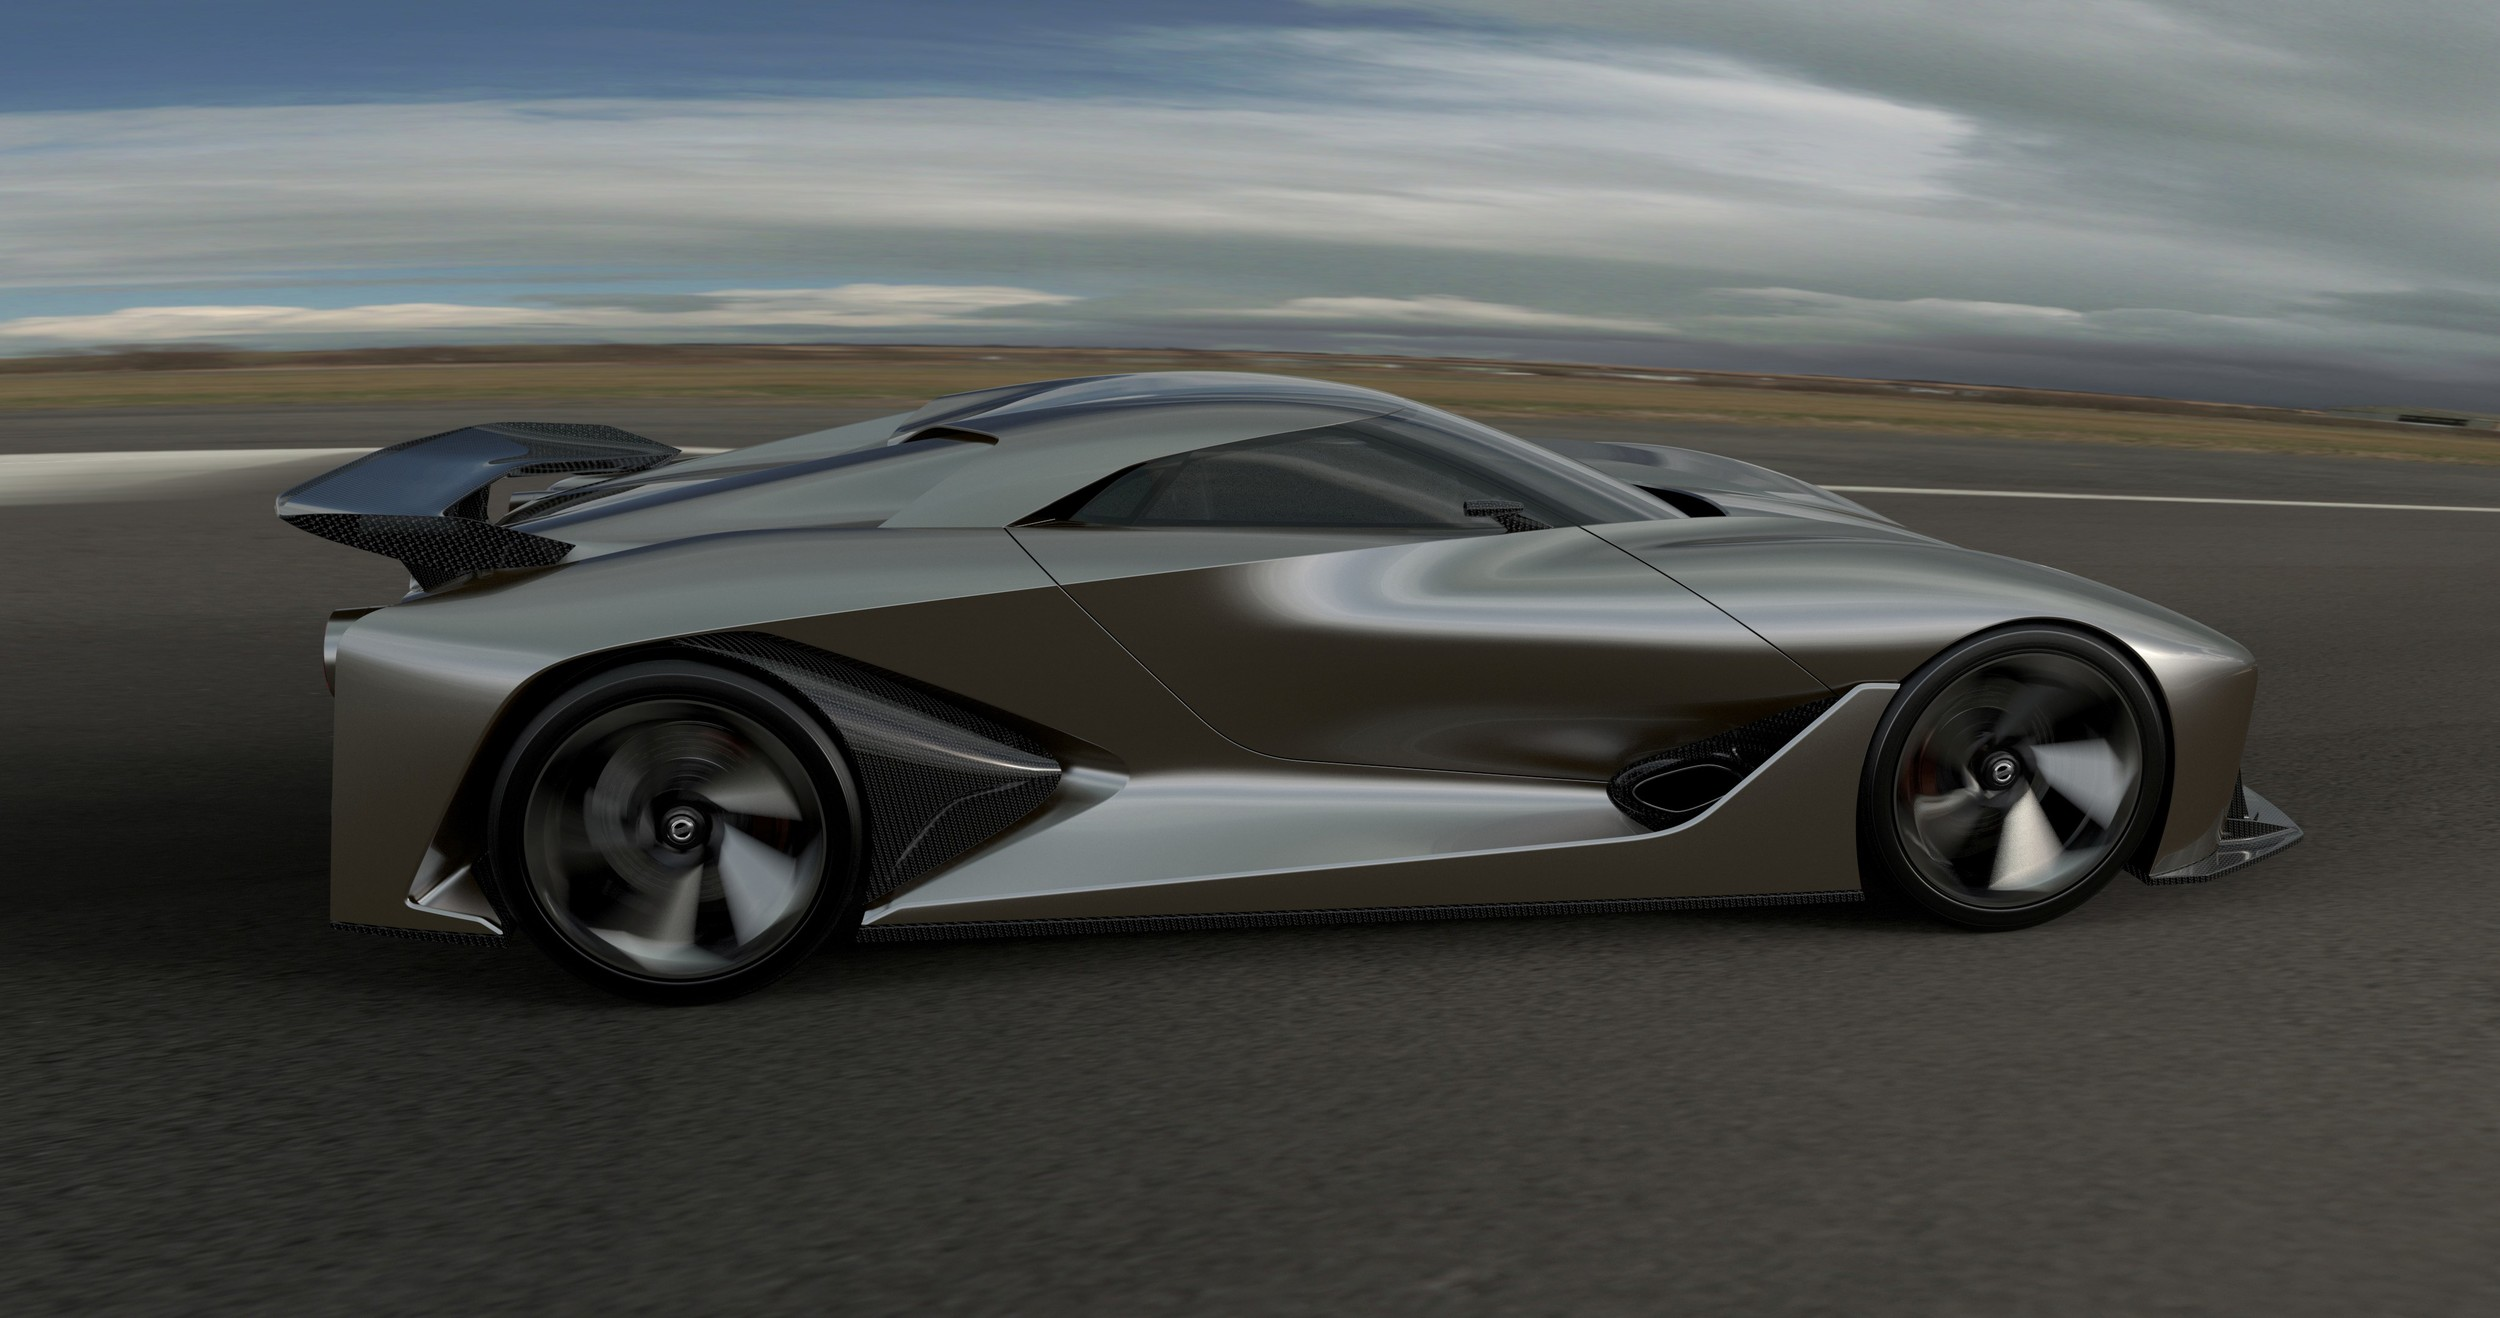 2014_Nissan_Concept_2020_Vision_Gran_Turismo_016_7844.jpg